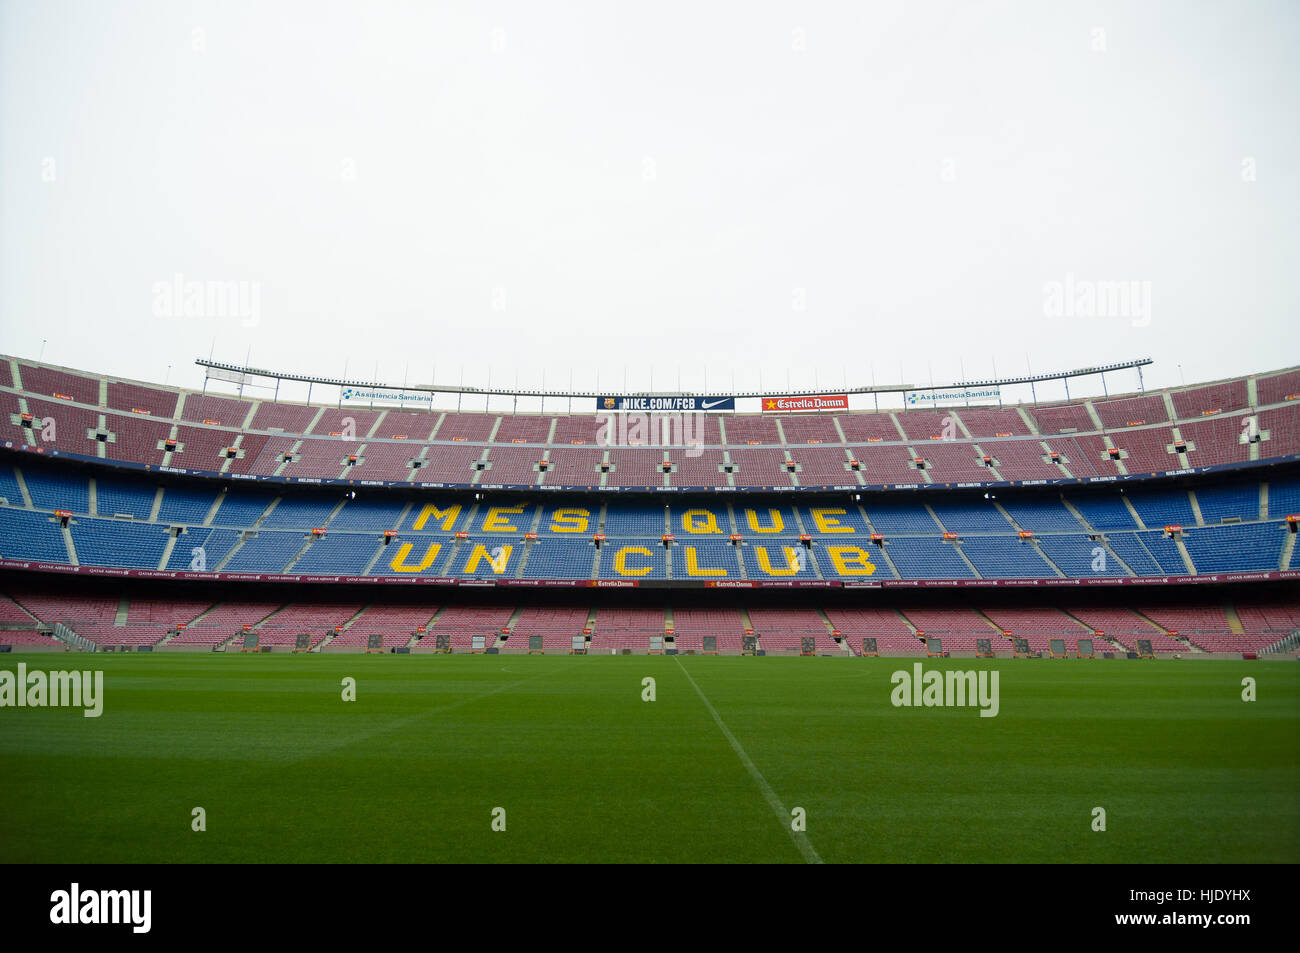 Barcelona, Spain - September 22, 2014: One of the stands displaying Barcelona's motto, Mes que un club, meaning - Stock Image